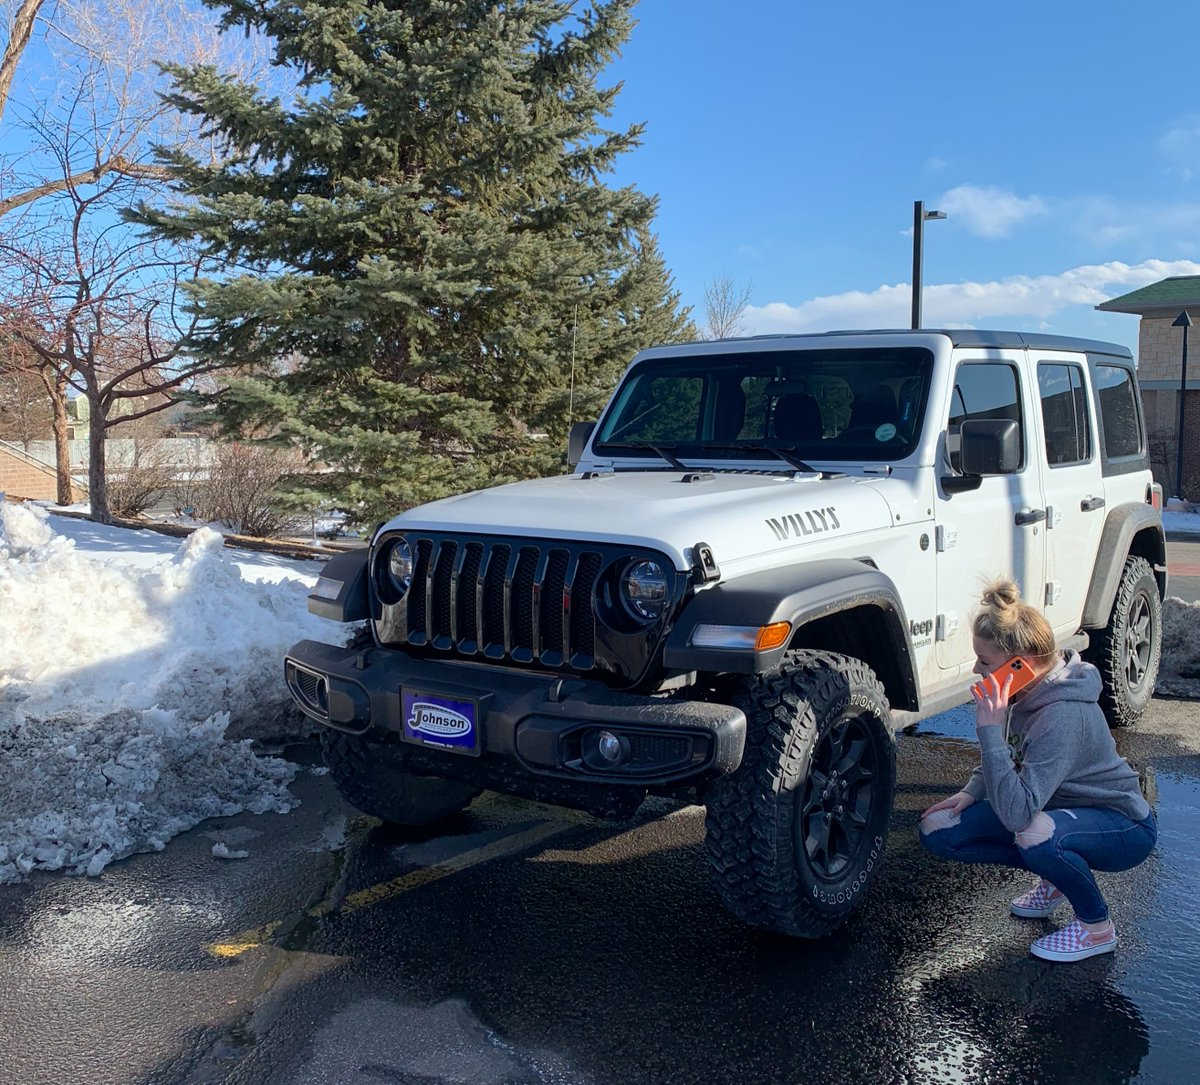 Emergency roadside assistance is a great thing to have on your auto policy for all the unexpected! Call our office to confirm you have it or to add it on your policy! #statefarm #teamsisler #louisvillecolorado #insurance #roadside #whitejeep #wrangler